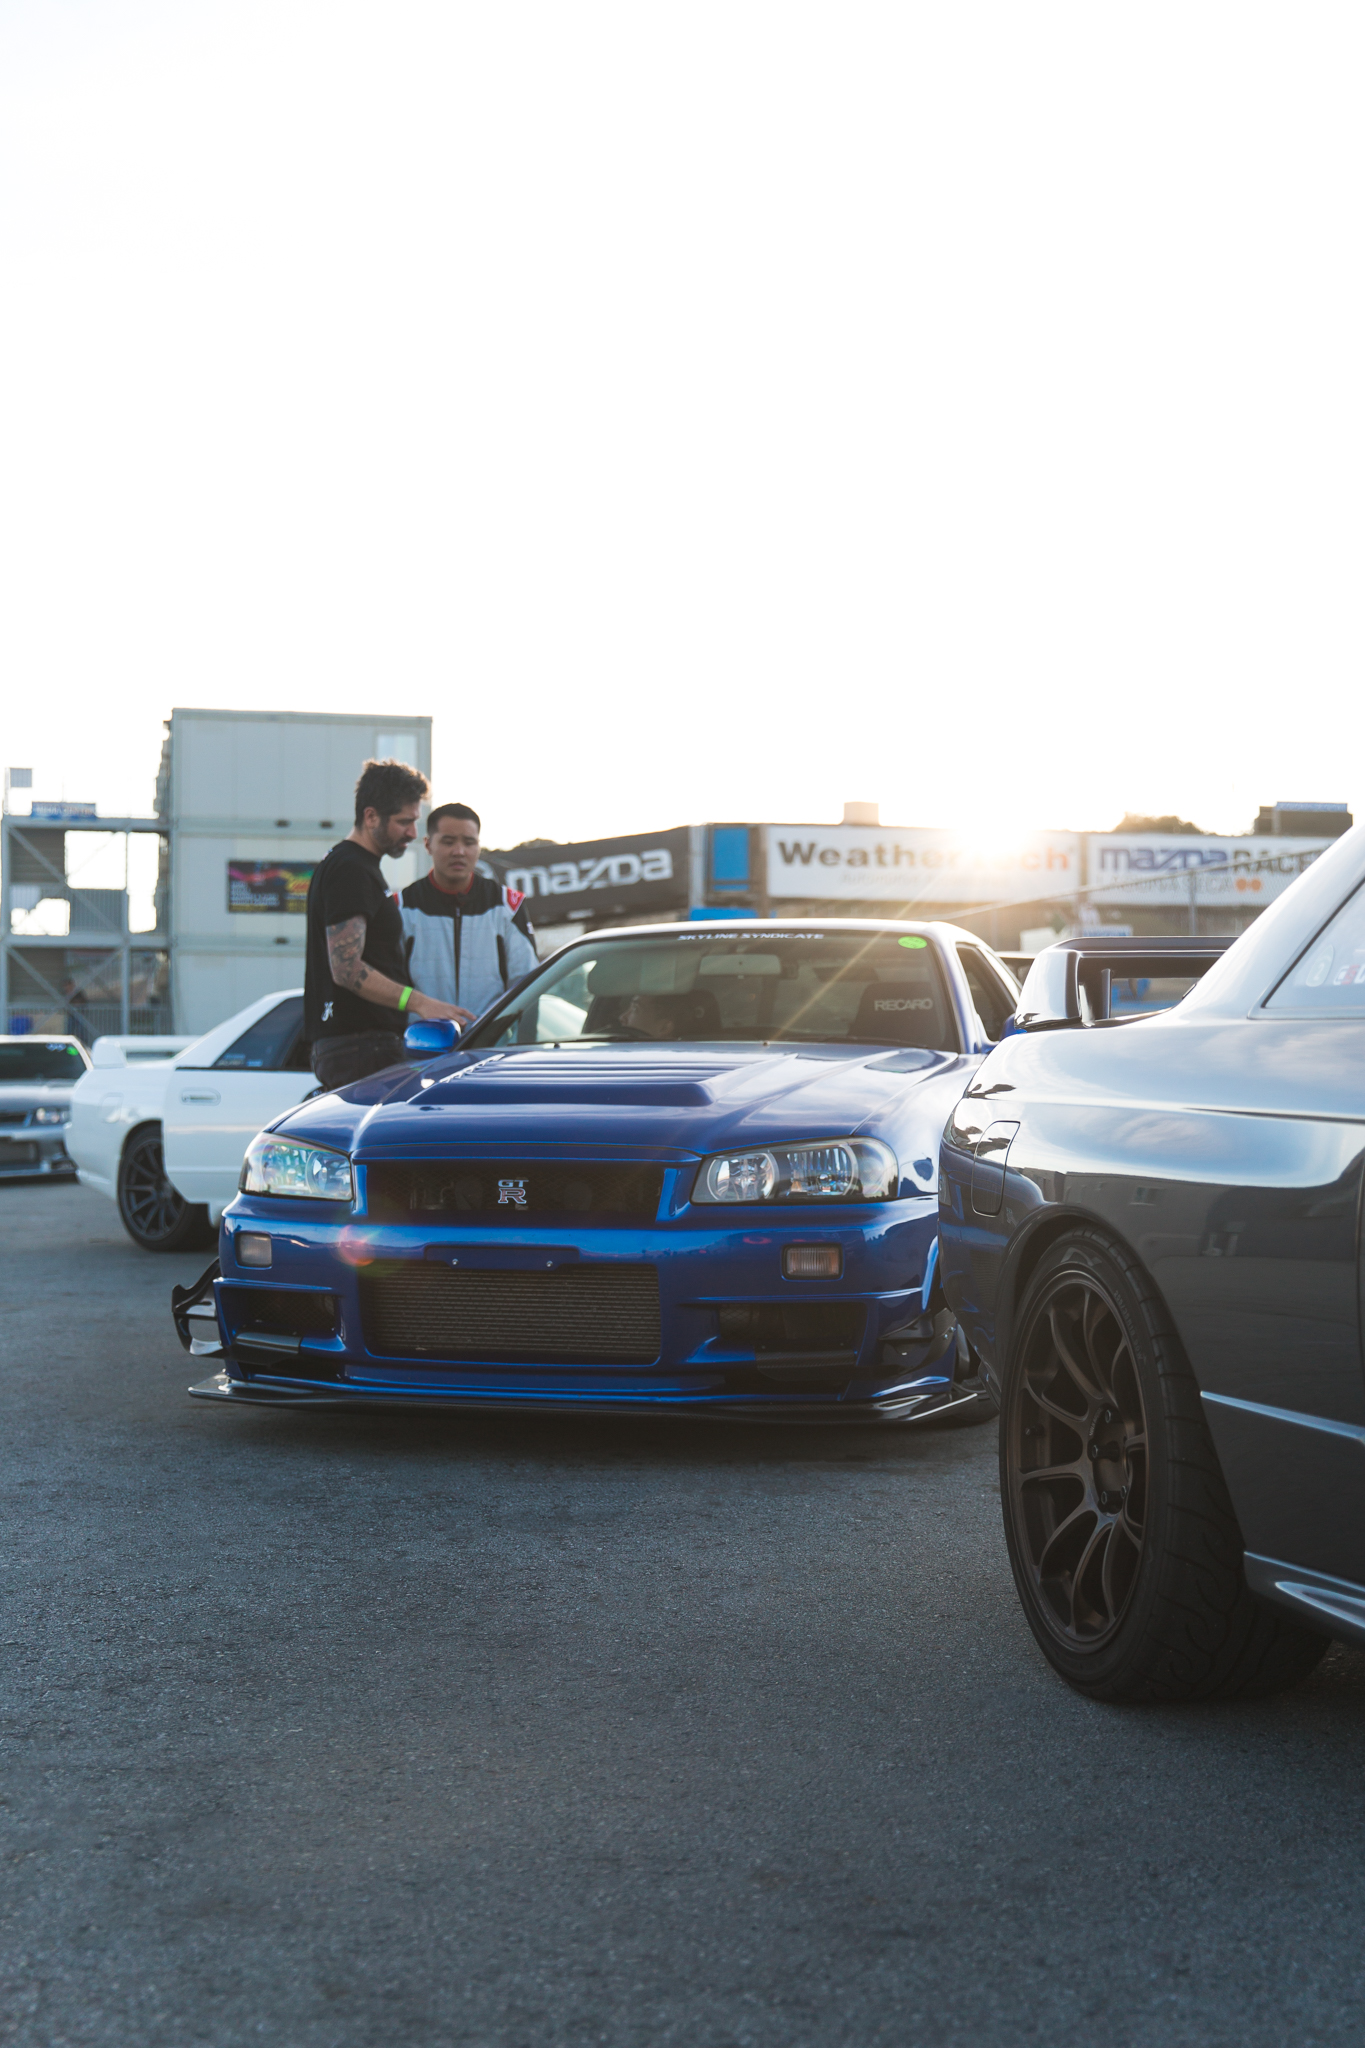 Stay_Driven_Rs_Day-109.jpg